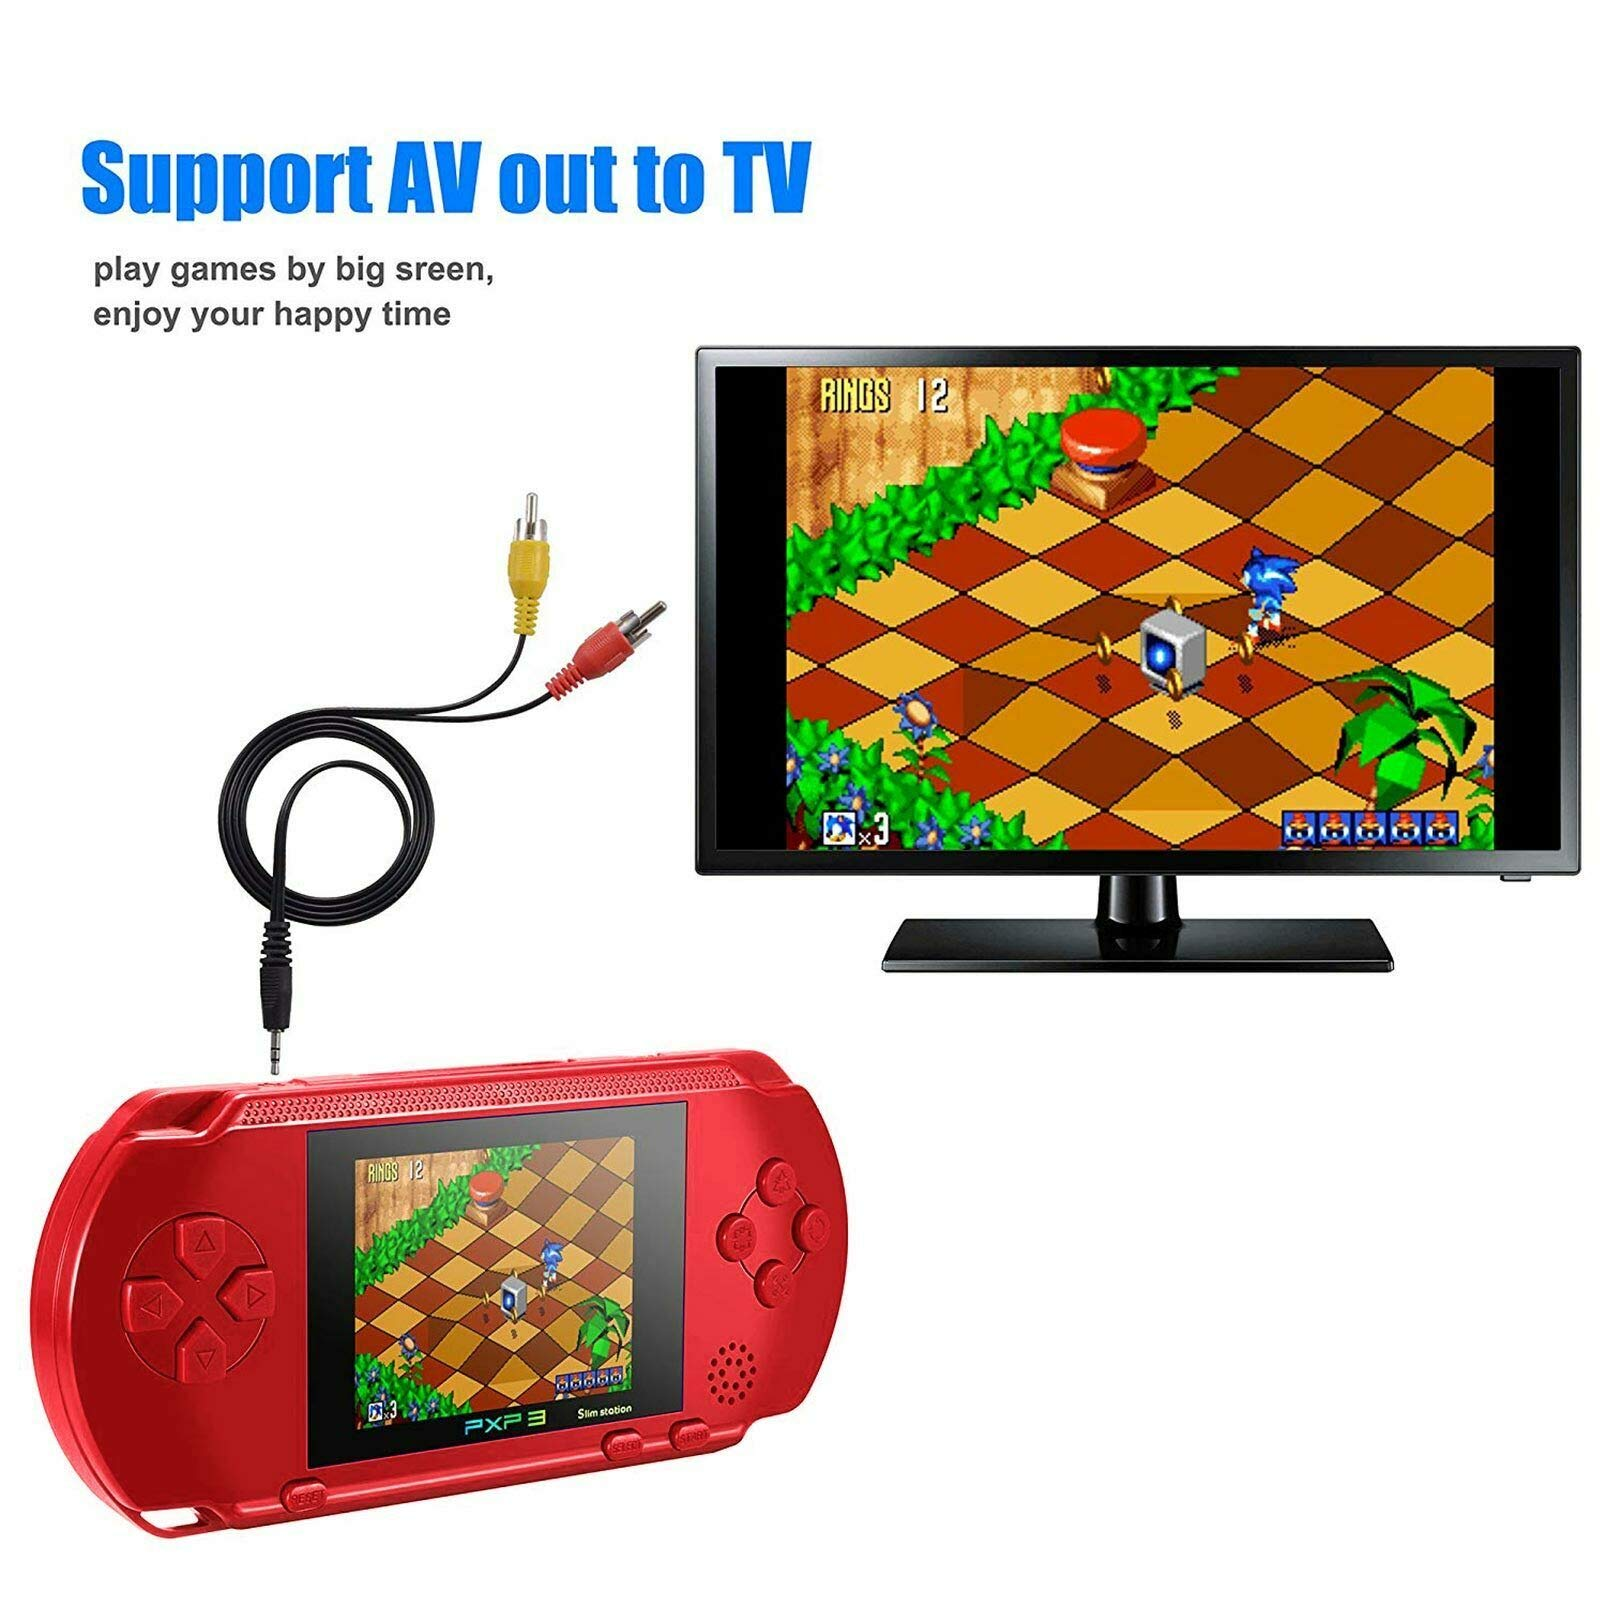 Ocamo Retro Game Console, AV Output PXP3 Portable Handheld Console Built-in Video Game Gaming Console Player Black by Ocamo (Image #4)